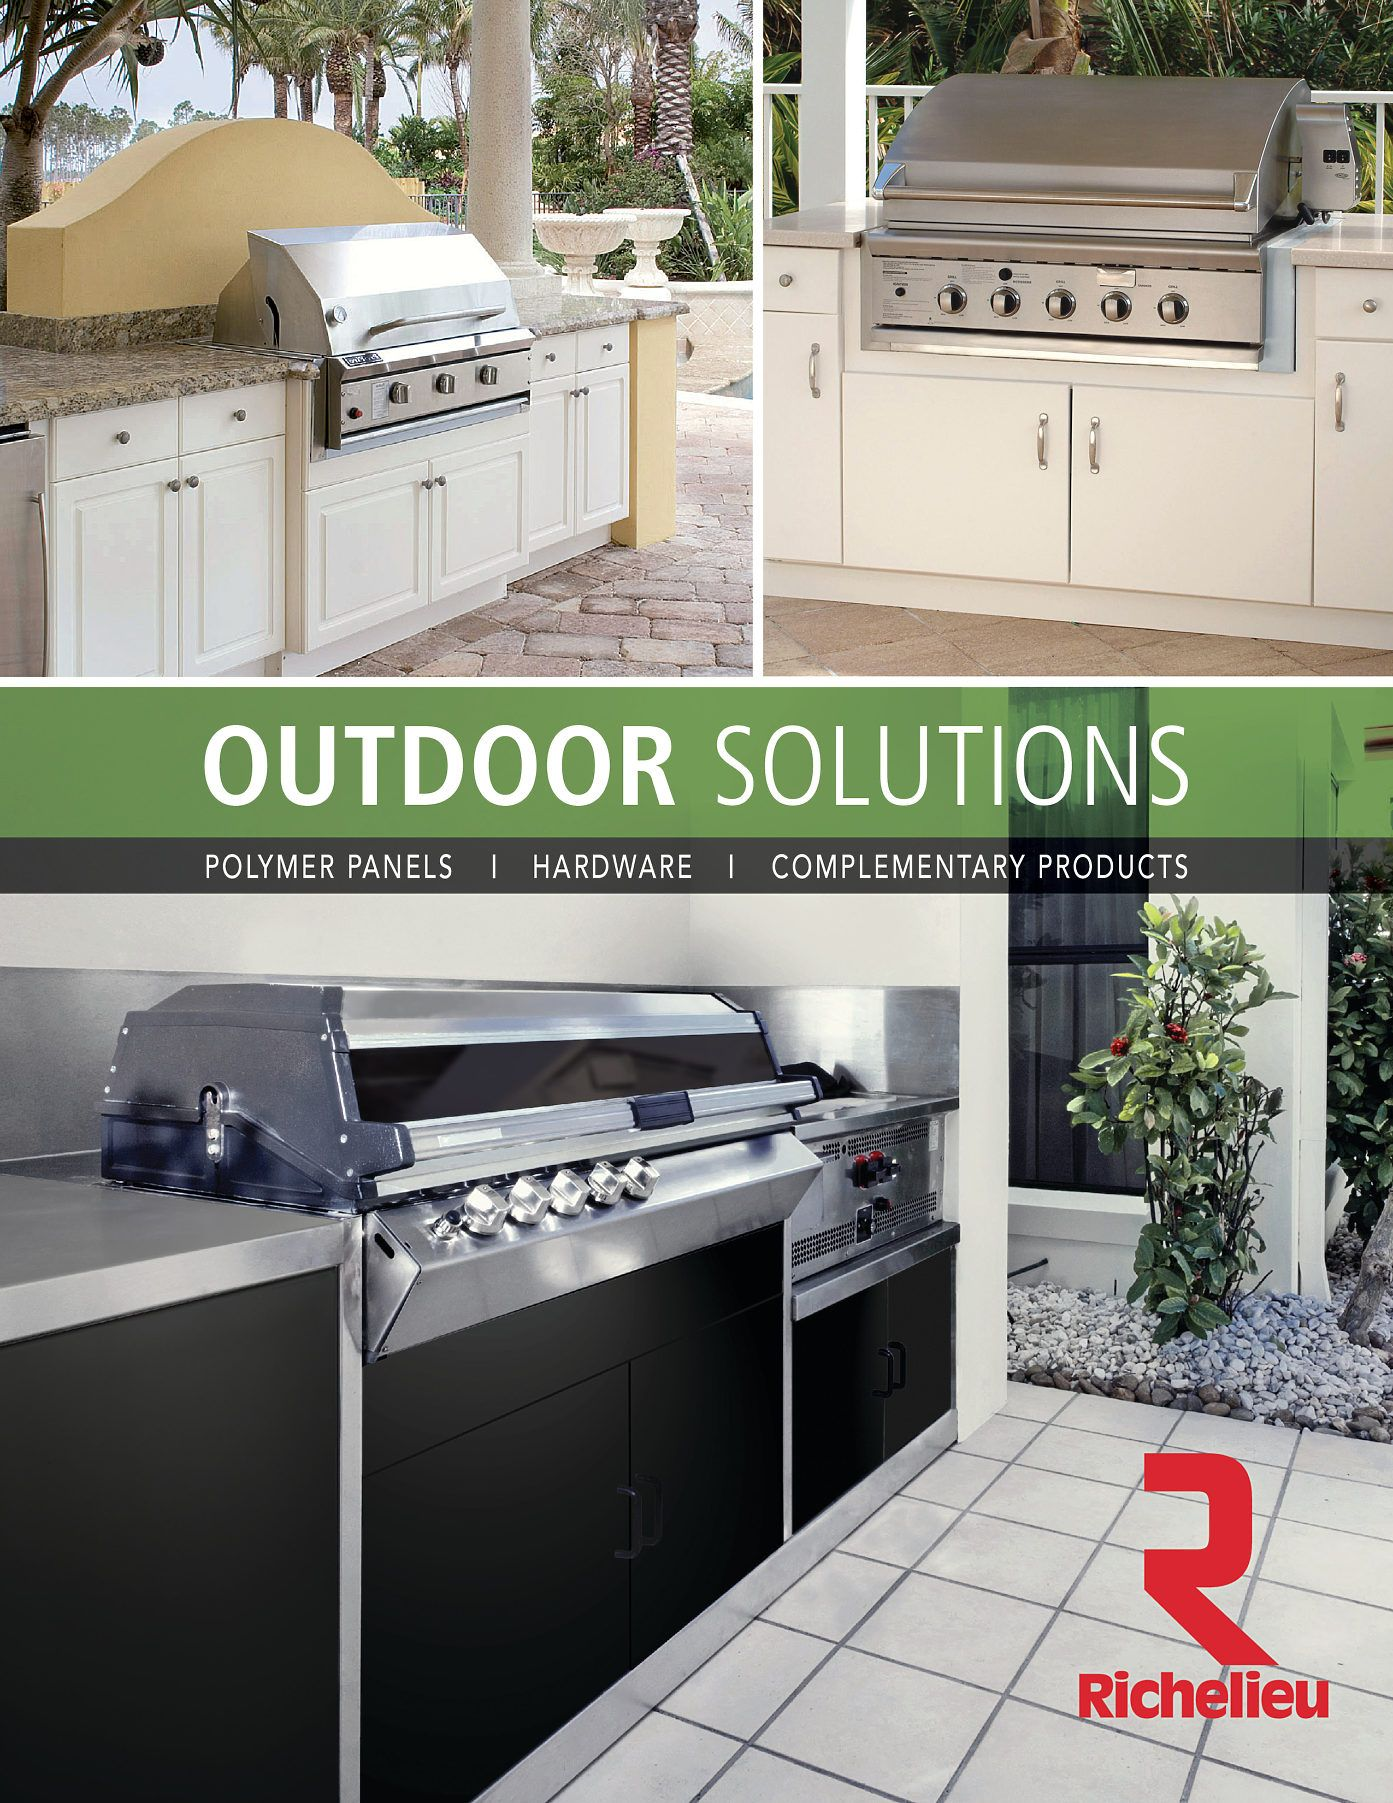 Richelieu Catalog Library Outdoors Solutions Page 1 Richelieu Hardware Outdoor Grill Richelieu Catalog